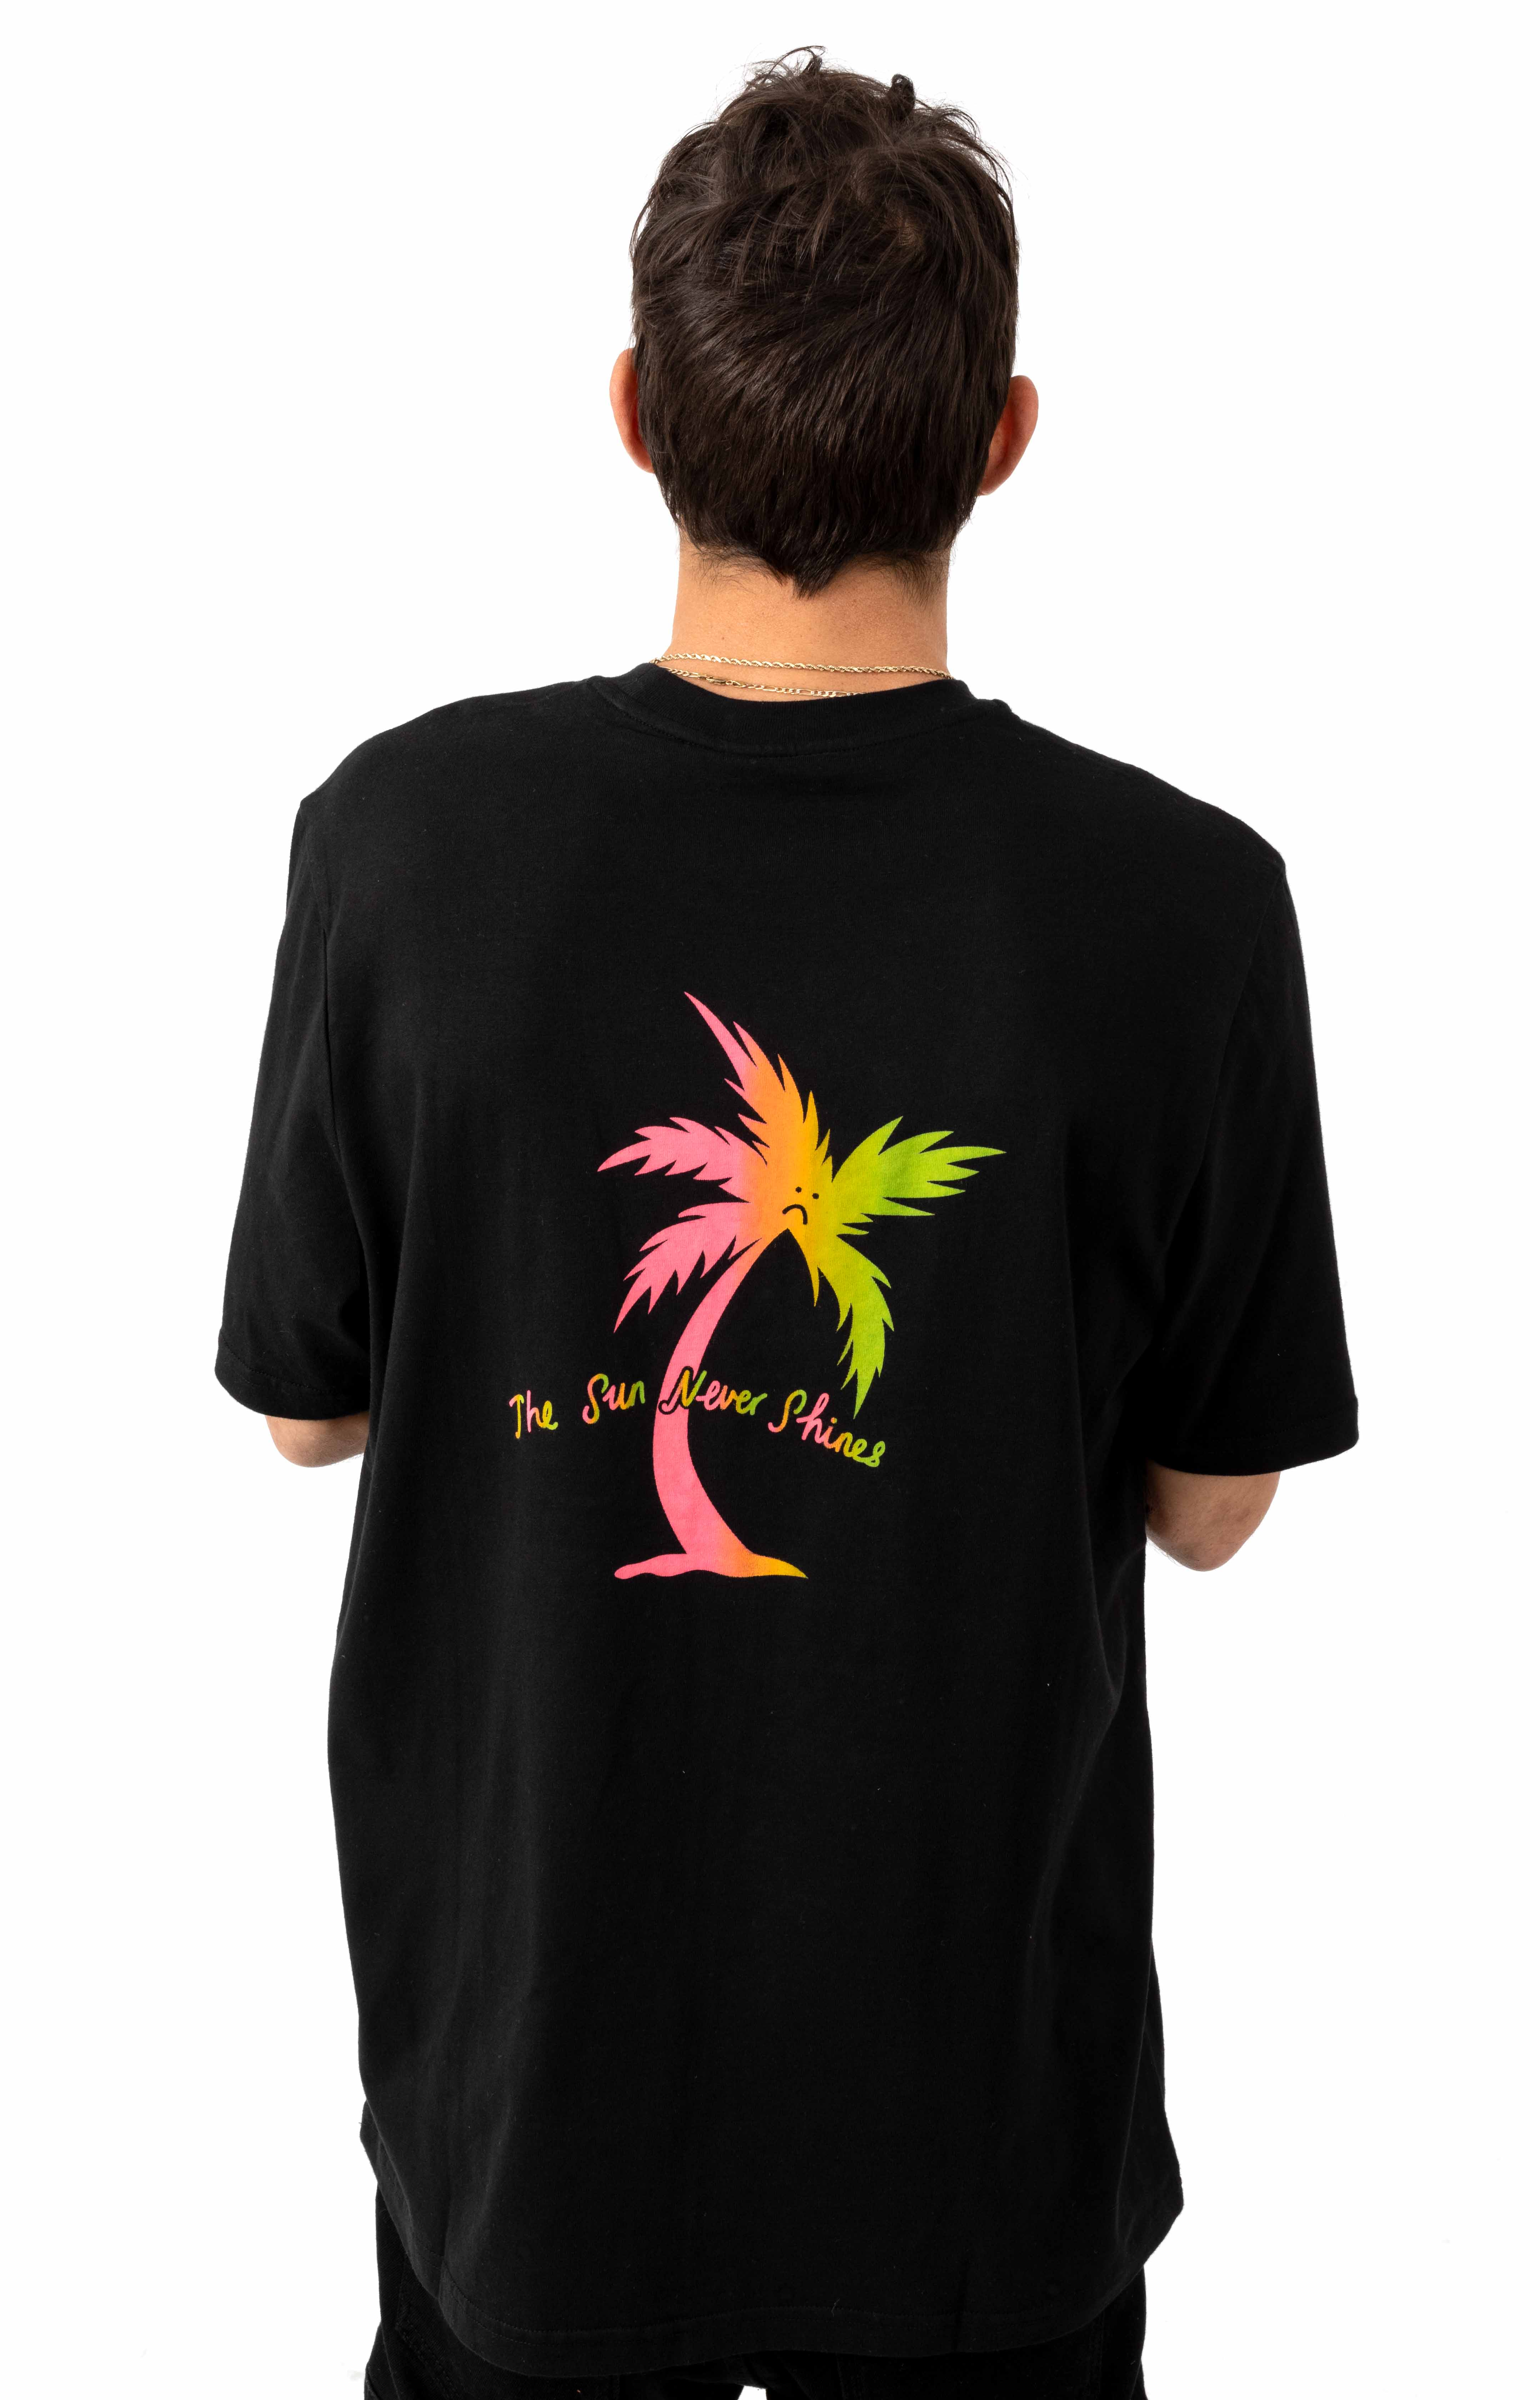 Sad Palm T-Shirt